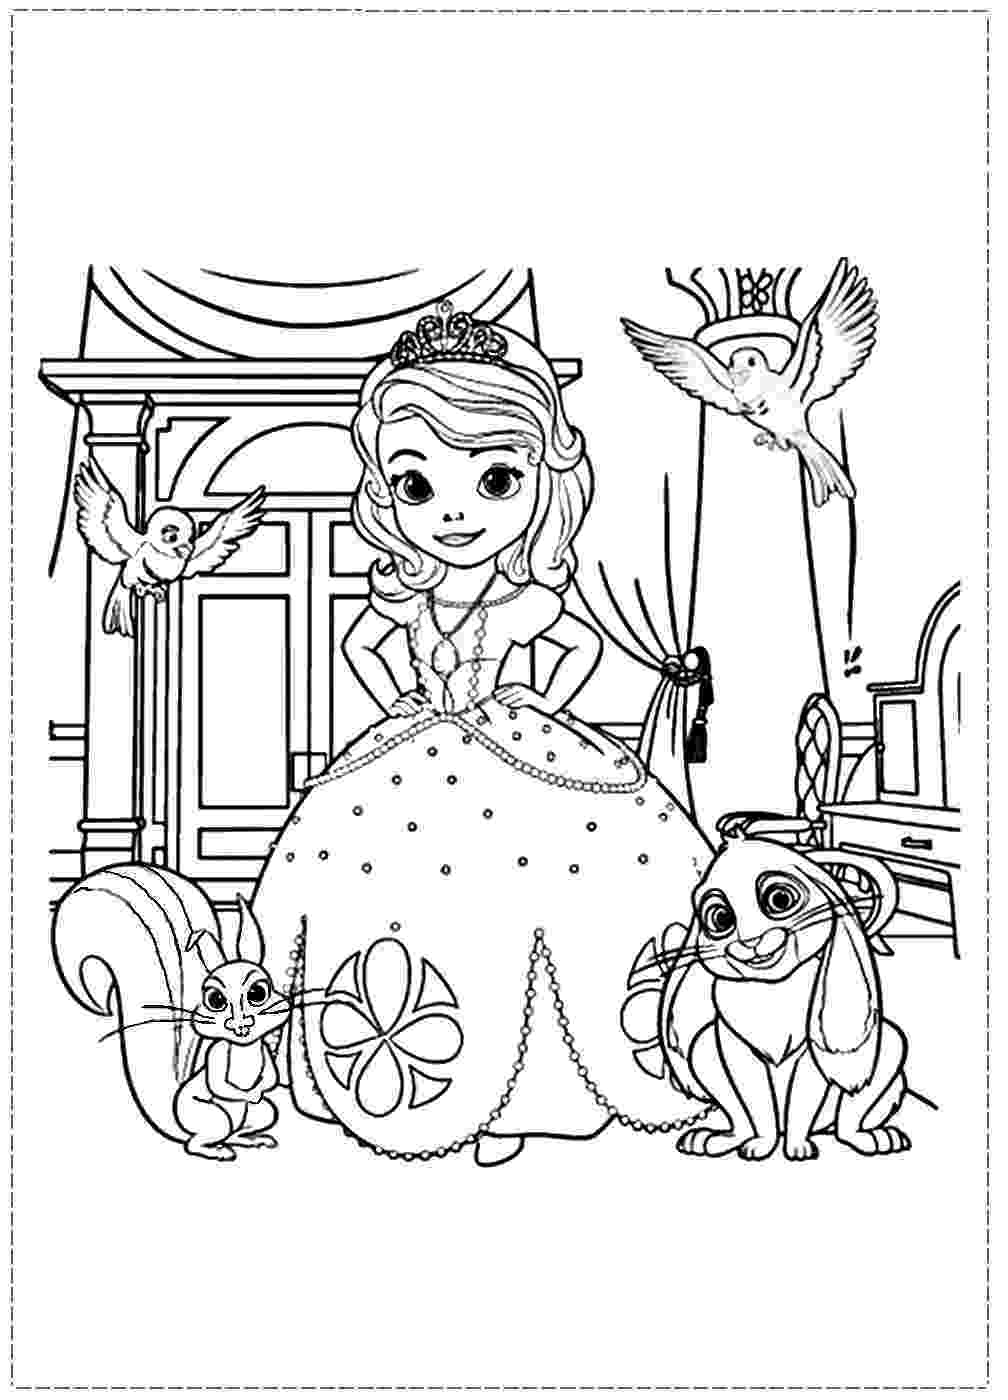 sofia the first colouring pages sofia and clover coloring page free printable coloring pages colouring pages sofia the first